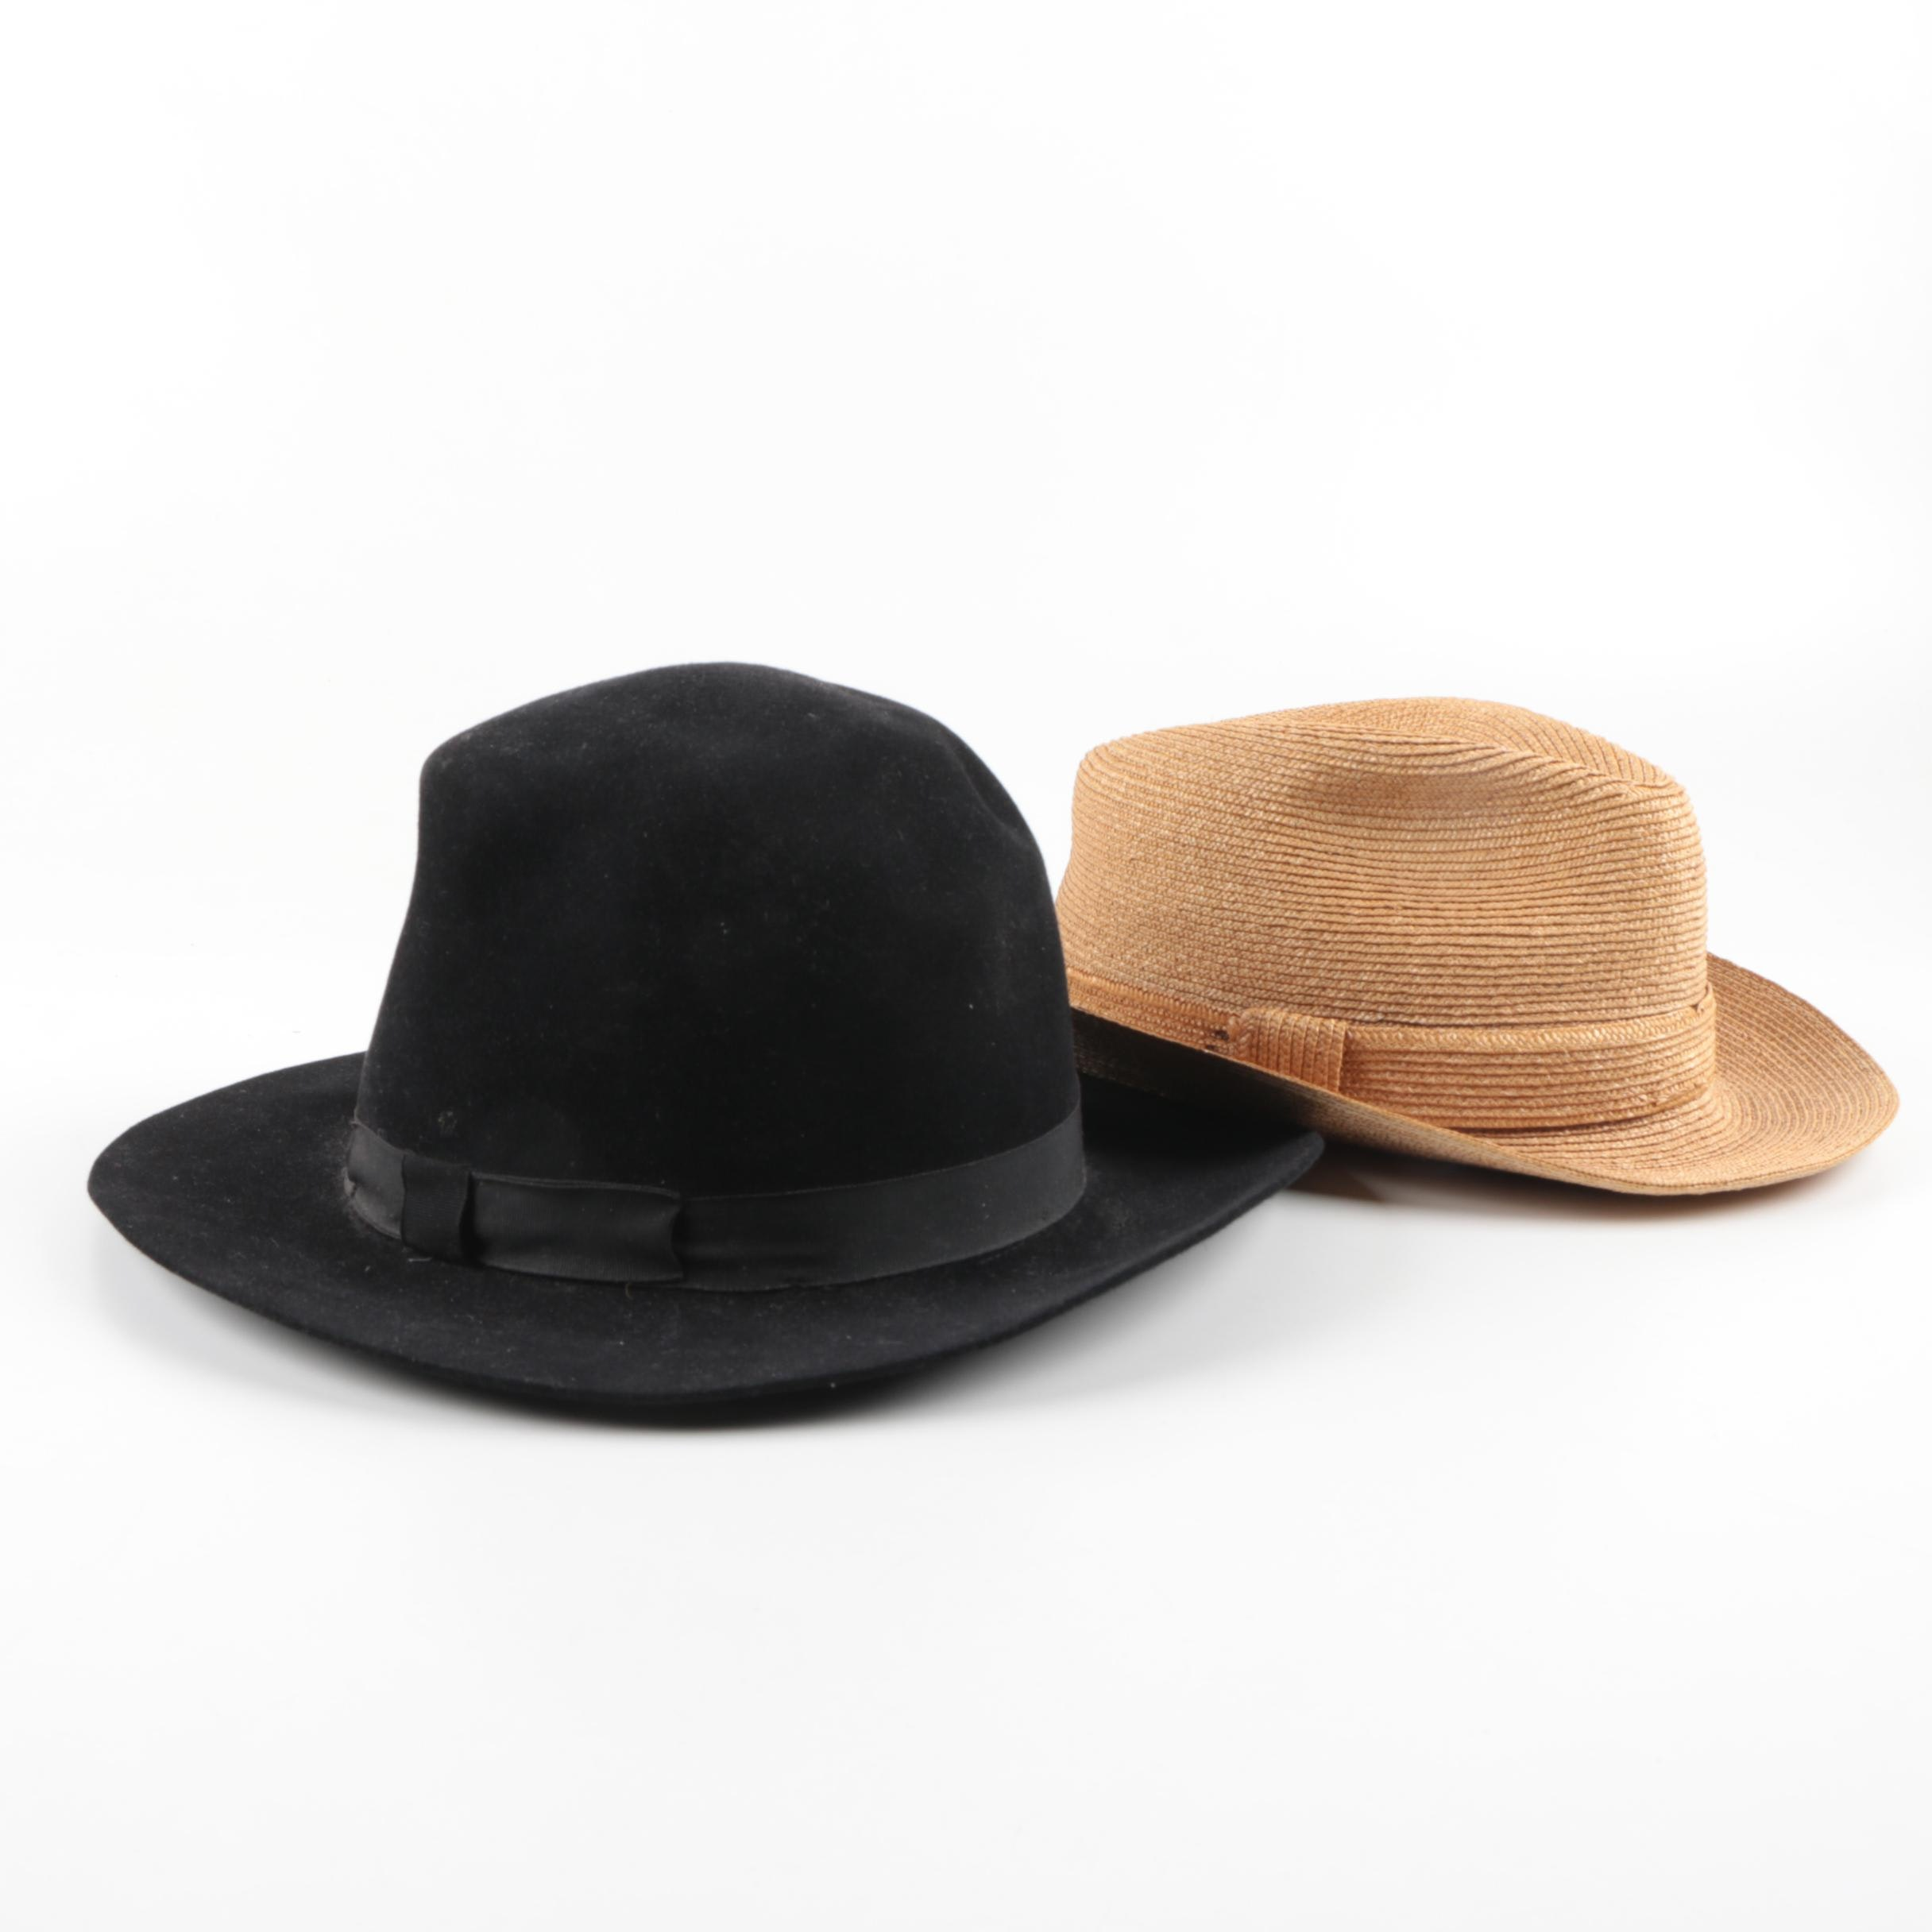 Vintage Woven Straw and Black Felt Hats